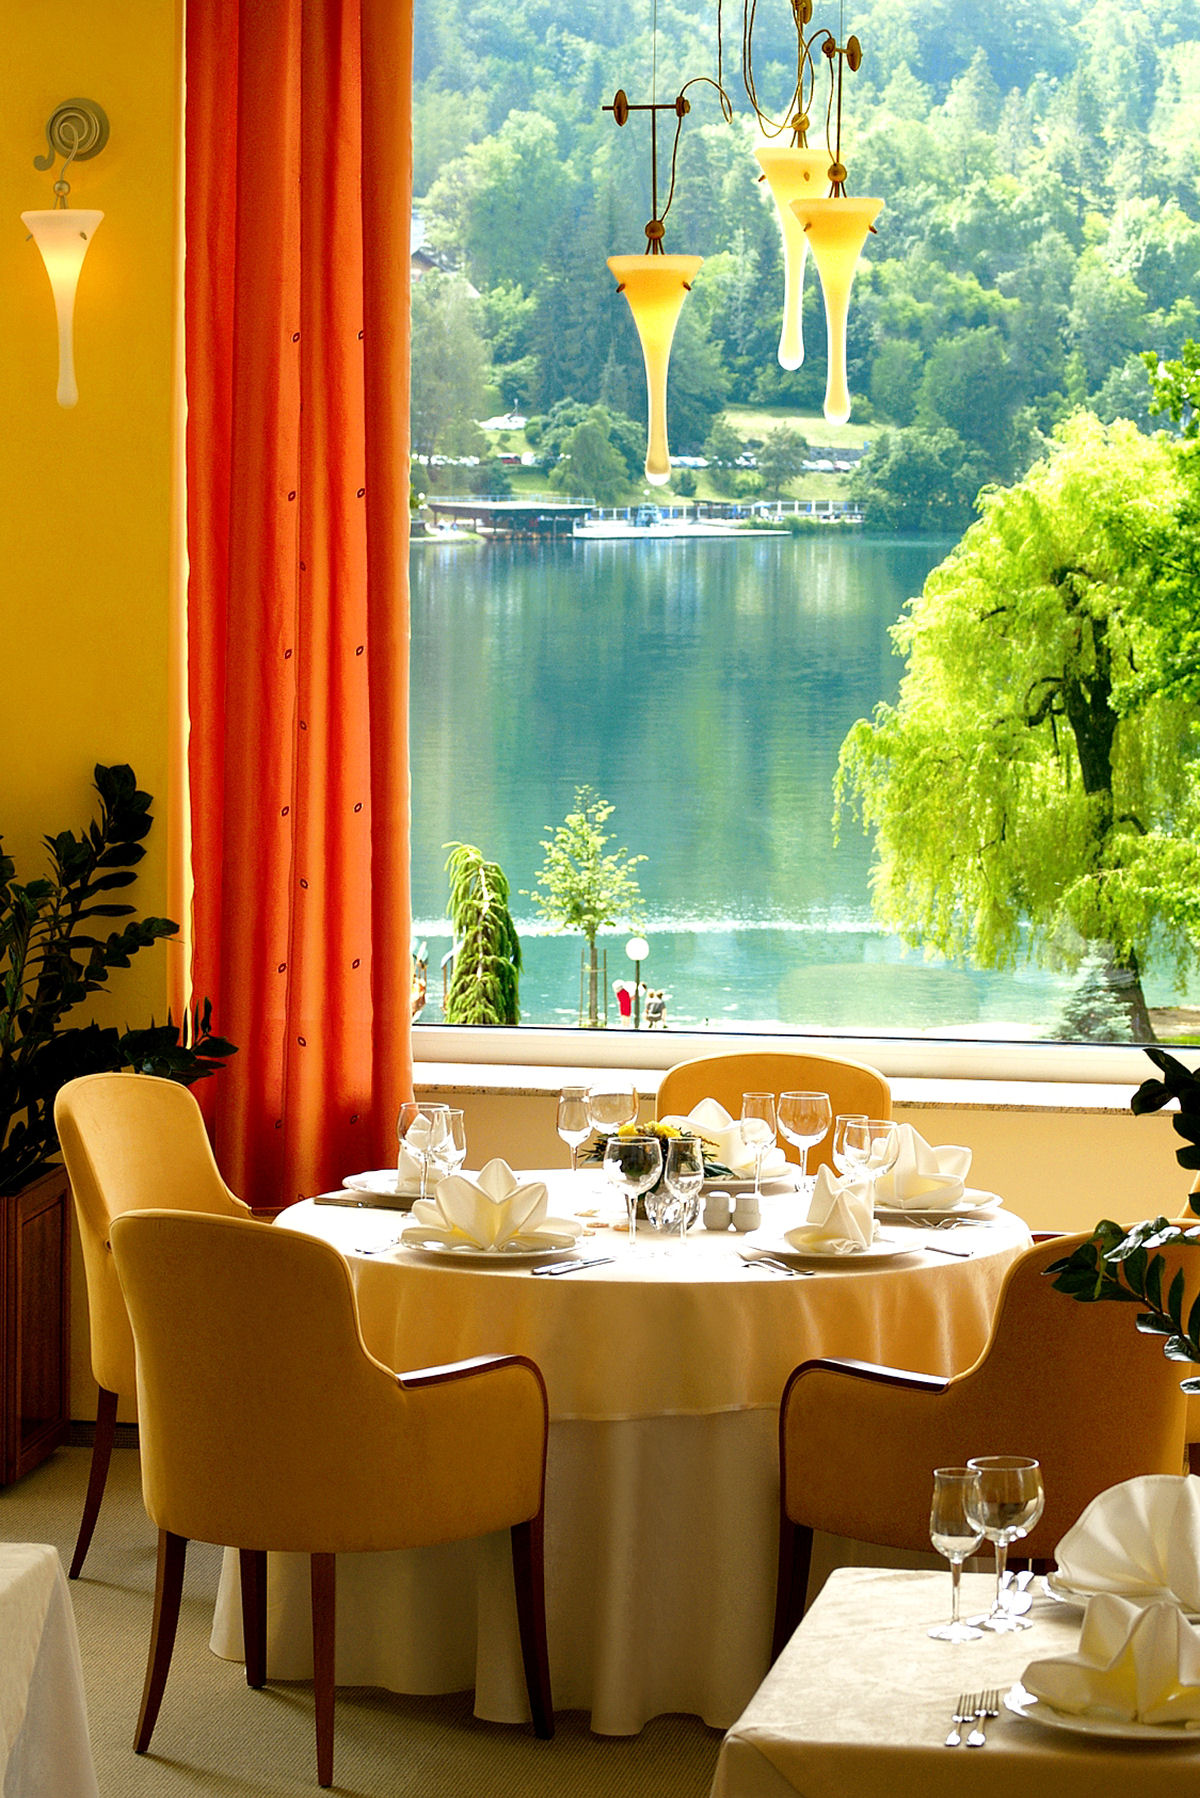 Labod restaurant features a wonderful view across Lake Bled